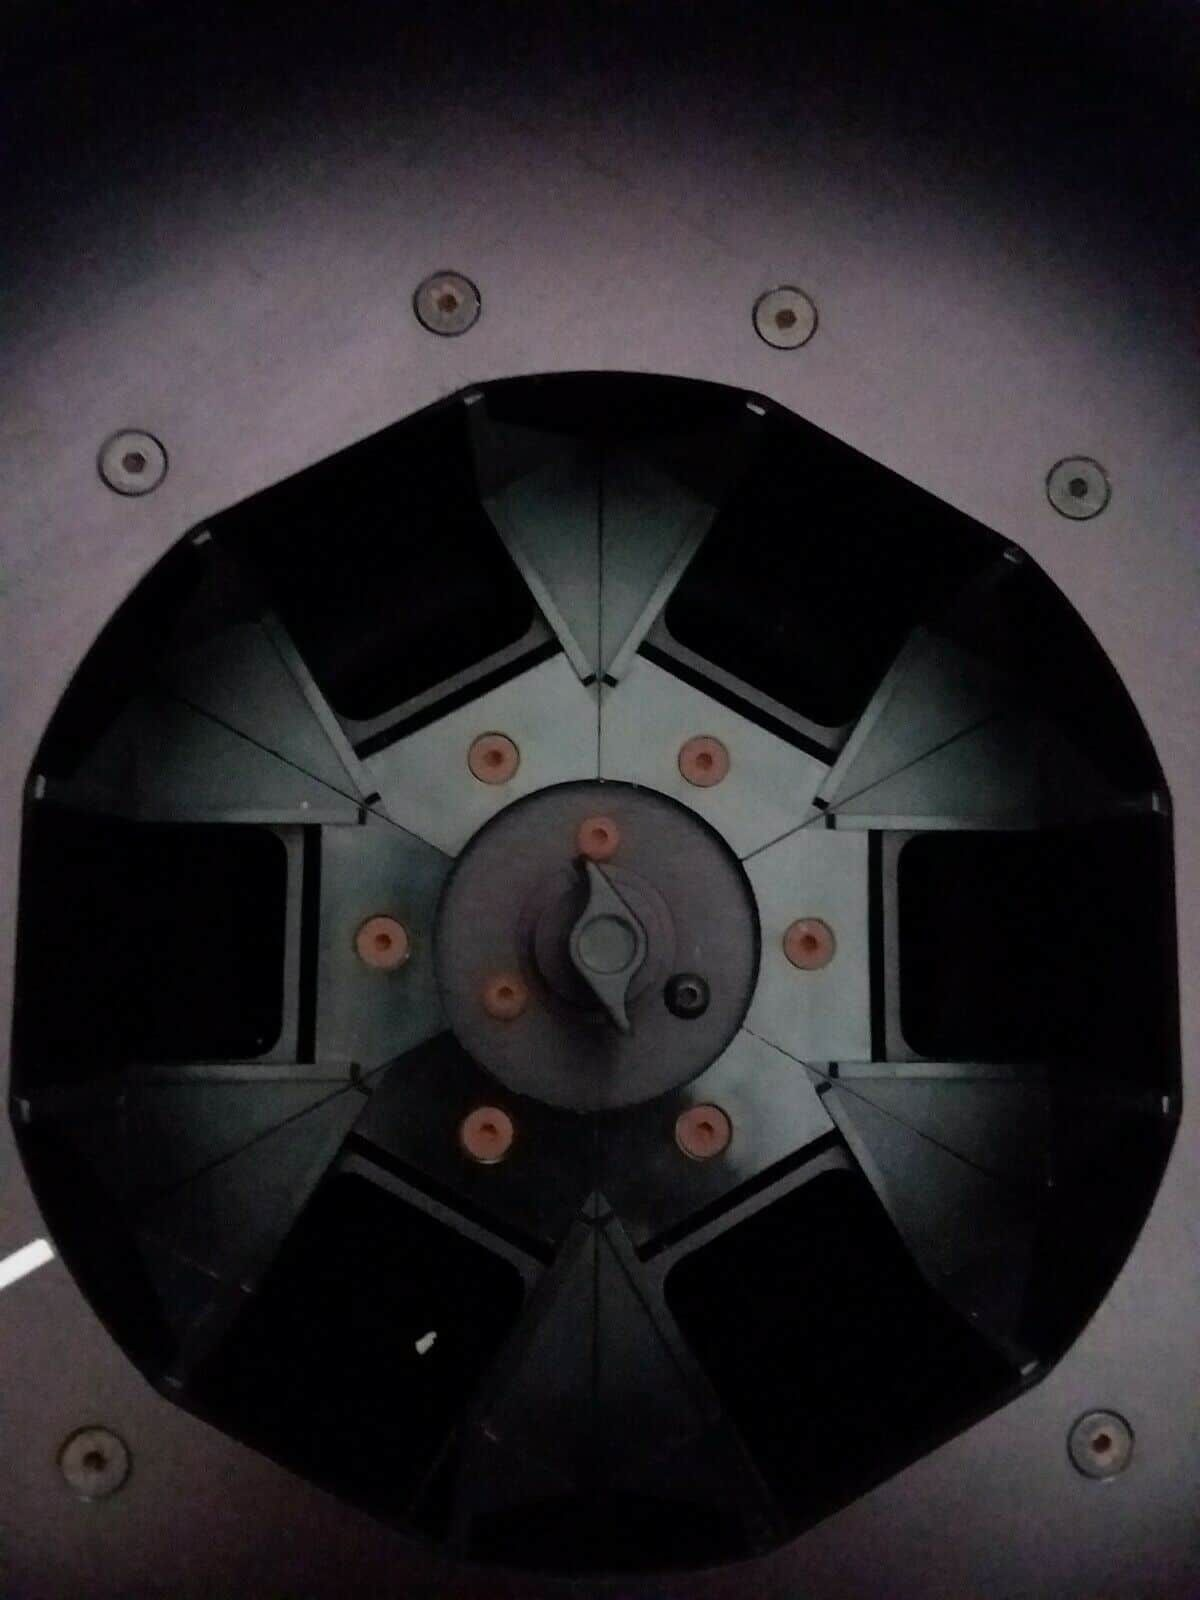 SARSTEDT LC 24 LC24 LABORATORY CENTRIFUGE. Cnx